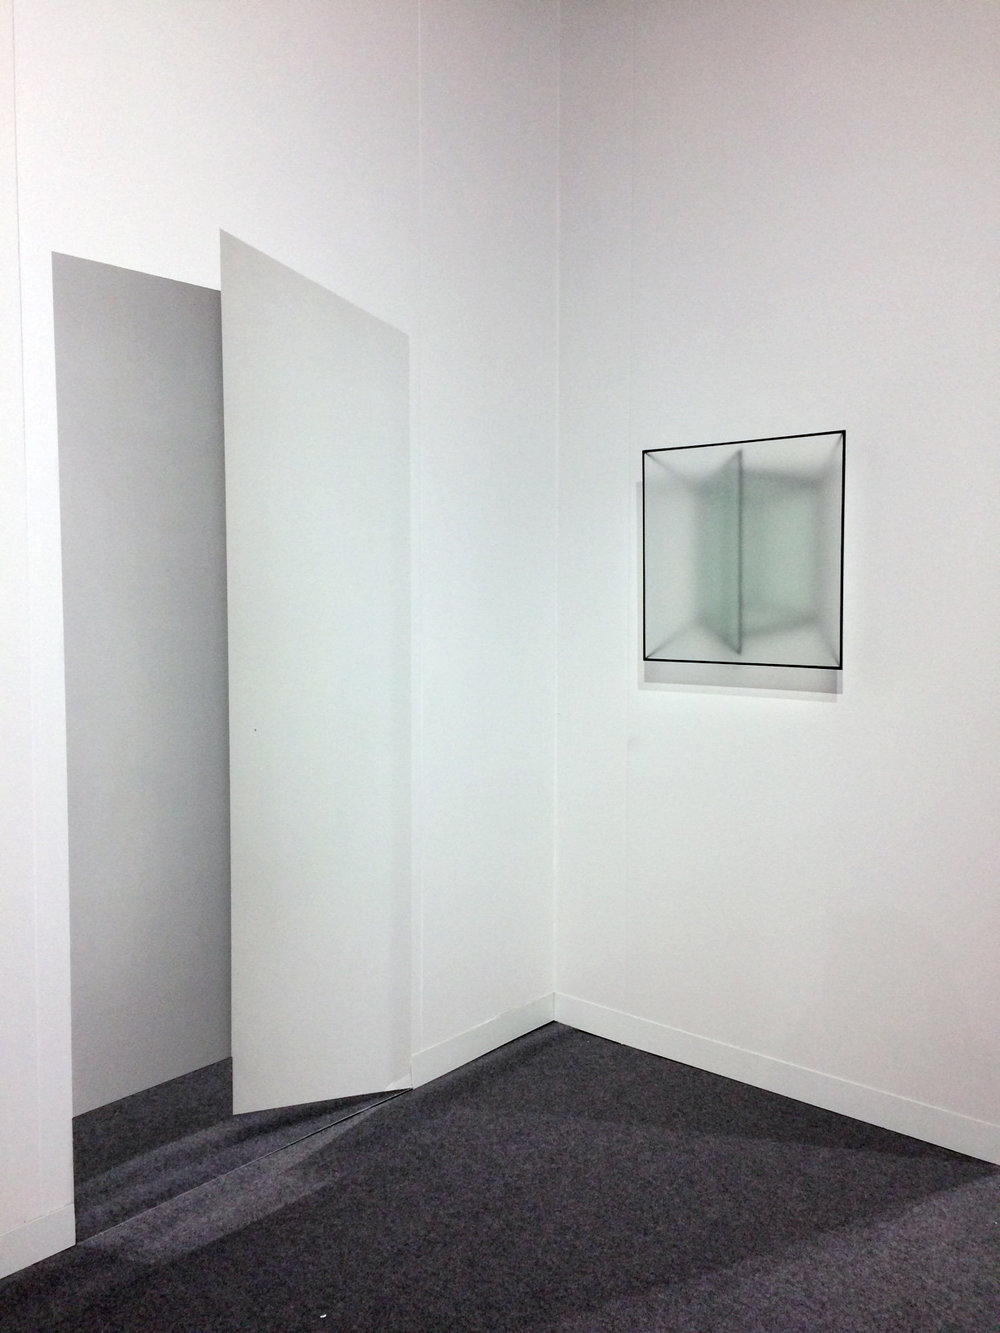 RE-SITED_TSPACES_VOLTA_AMONEY_2018INSTALL11 (WEB).jpg